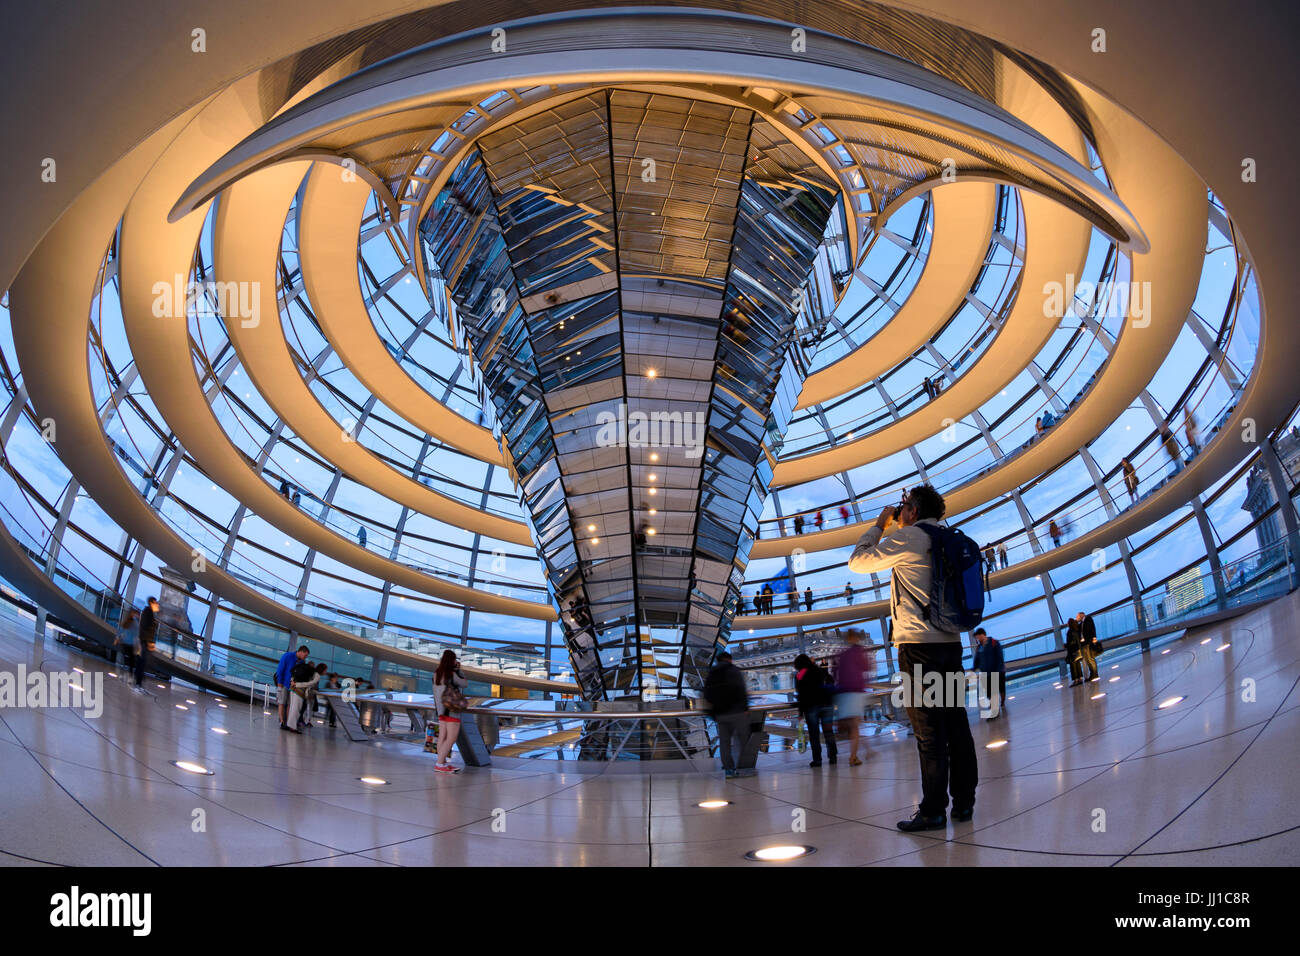 Interior Berlin Berlin Germany Interior Of The Reichstag Dome And Spiral